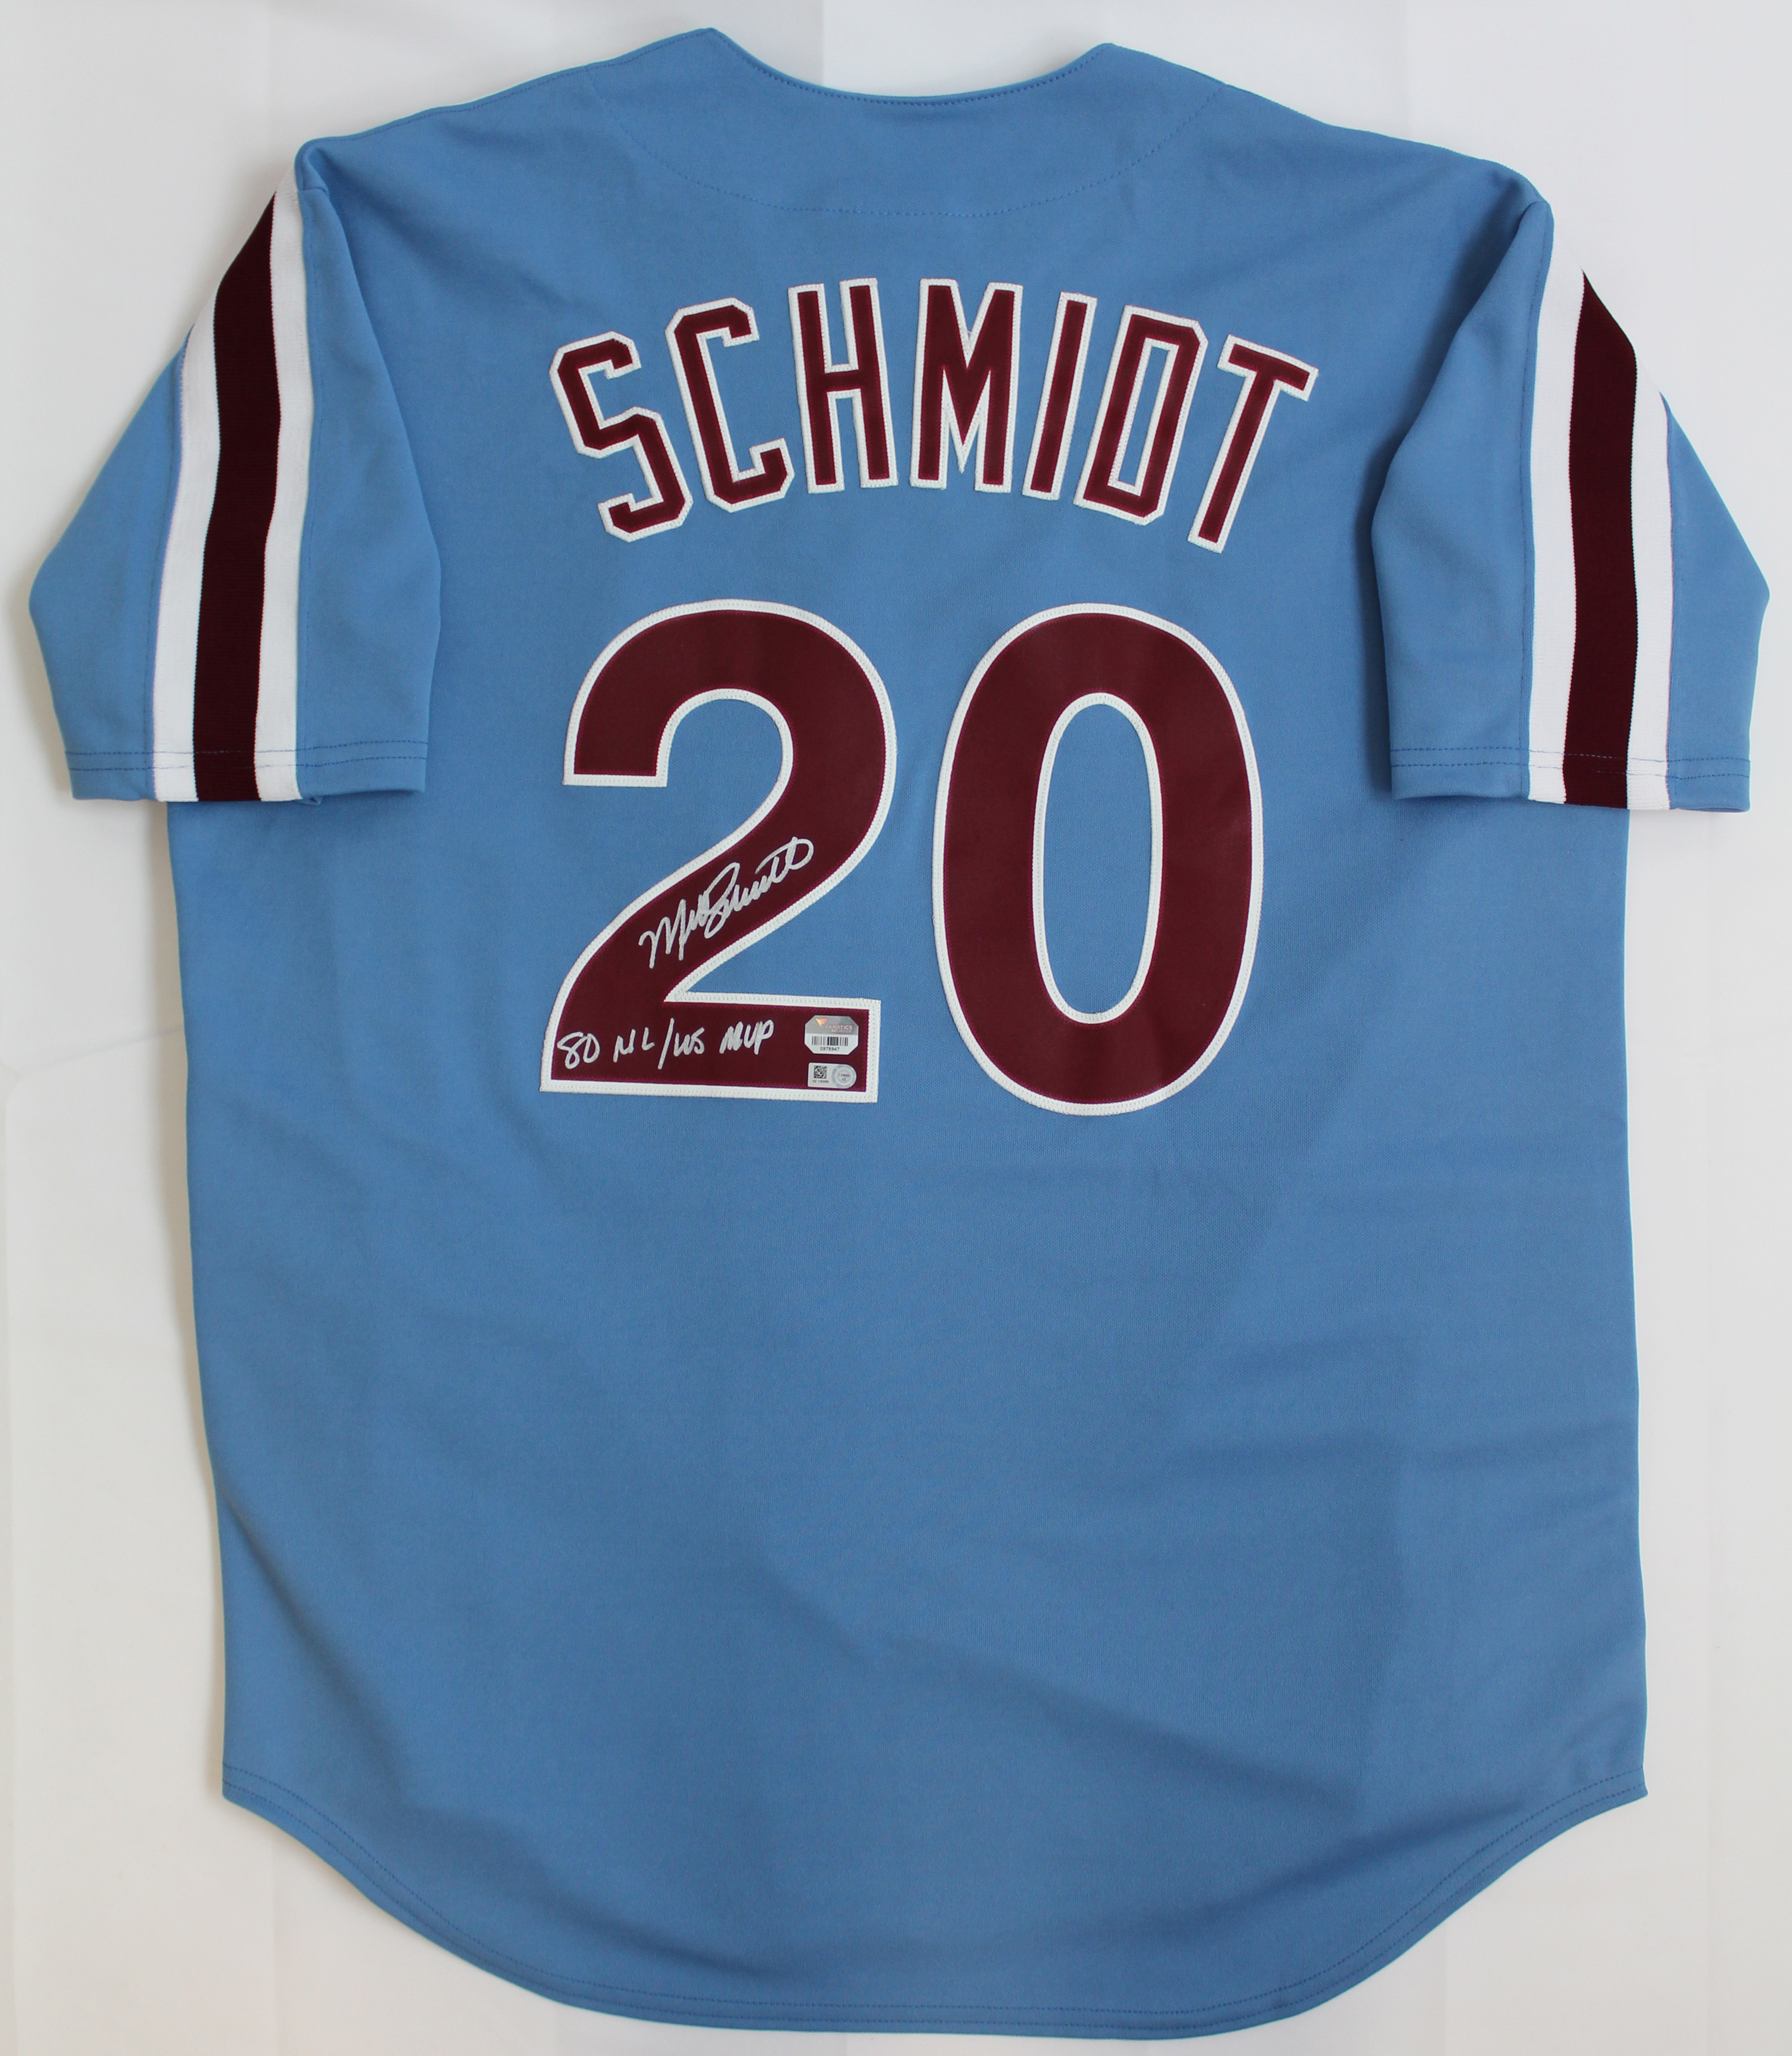 info for 2a895 57872 Details about Mike Schmidt Signed Philadelphia Phillies Blue